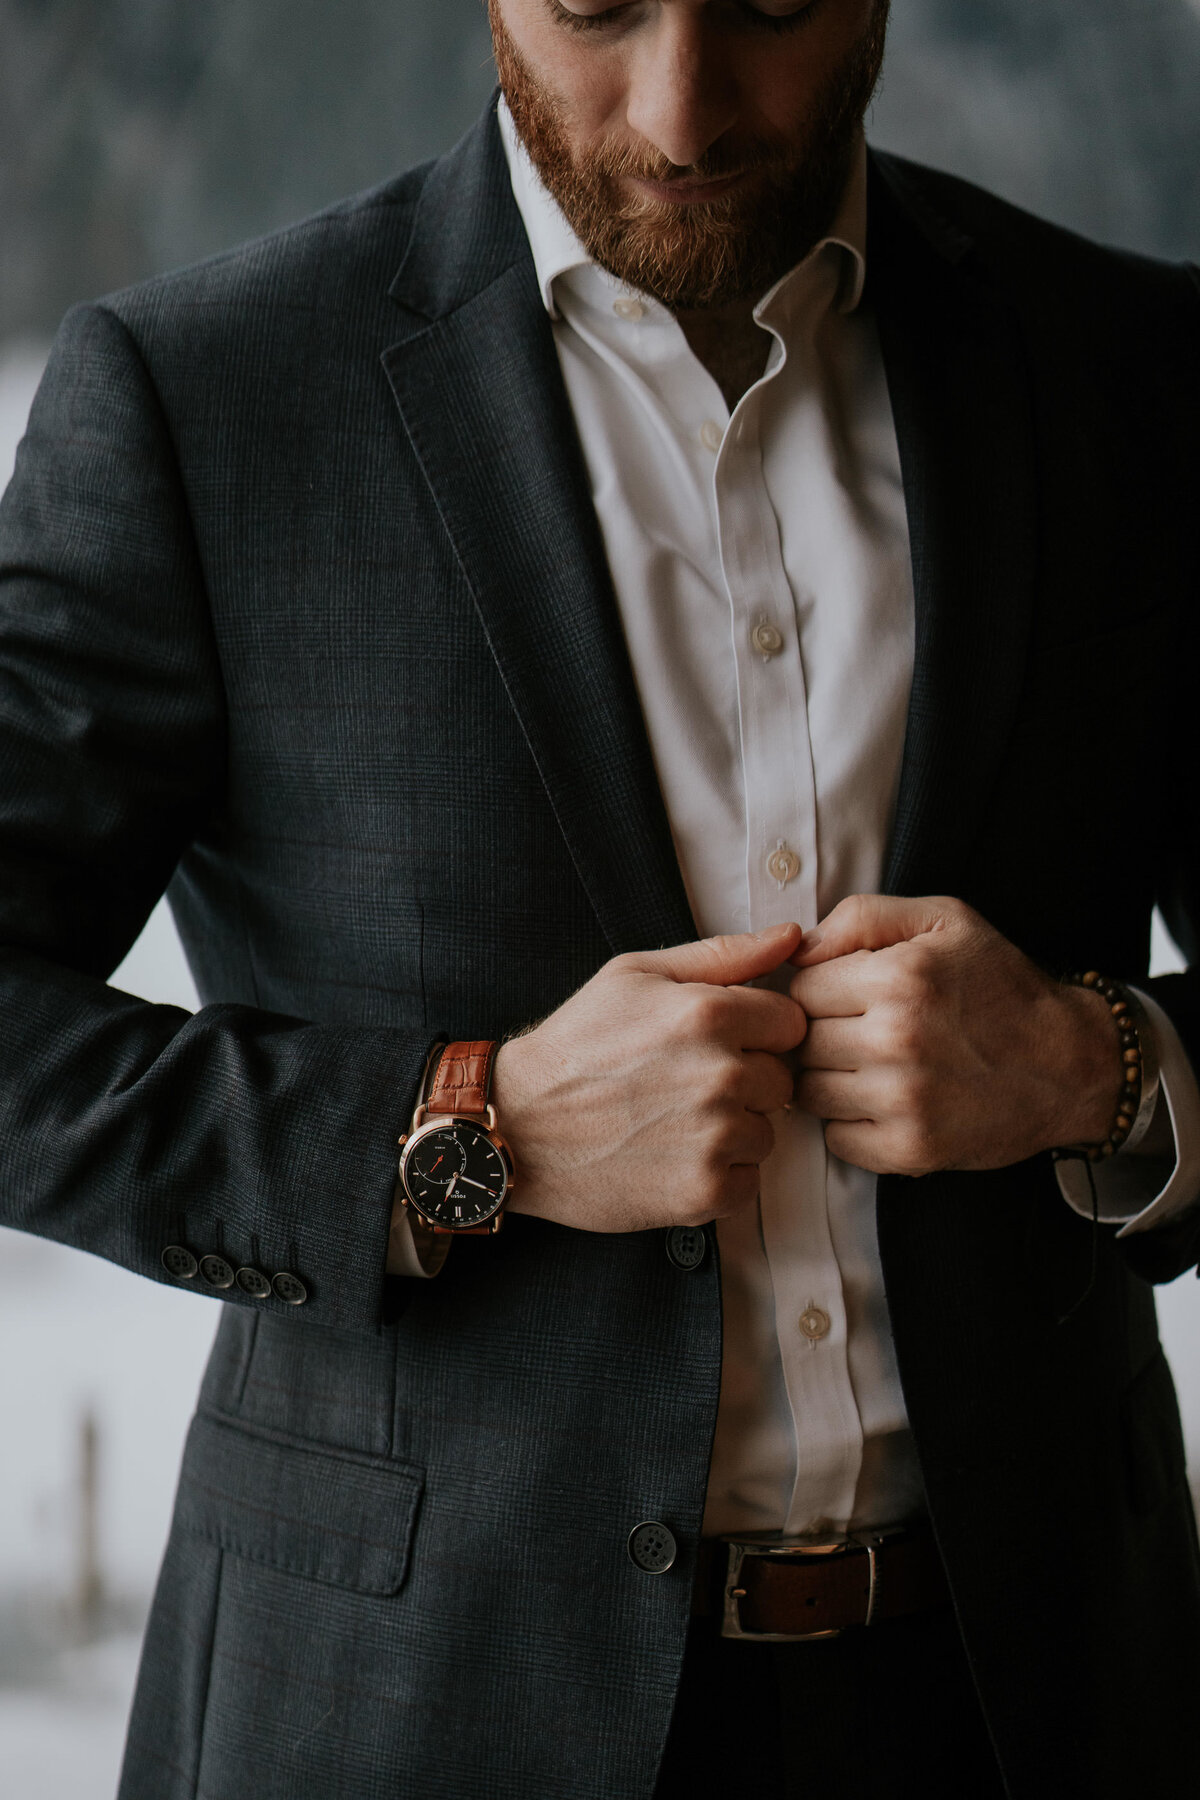 Watch and suit. Product photographer Leeds